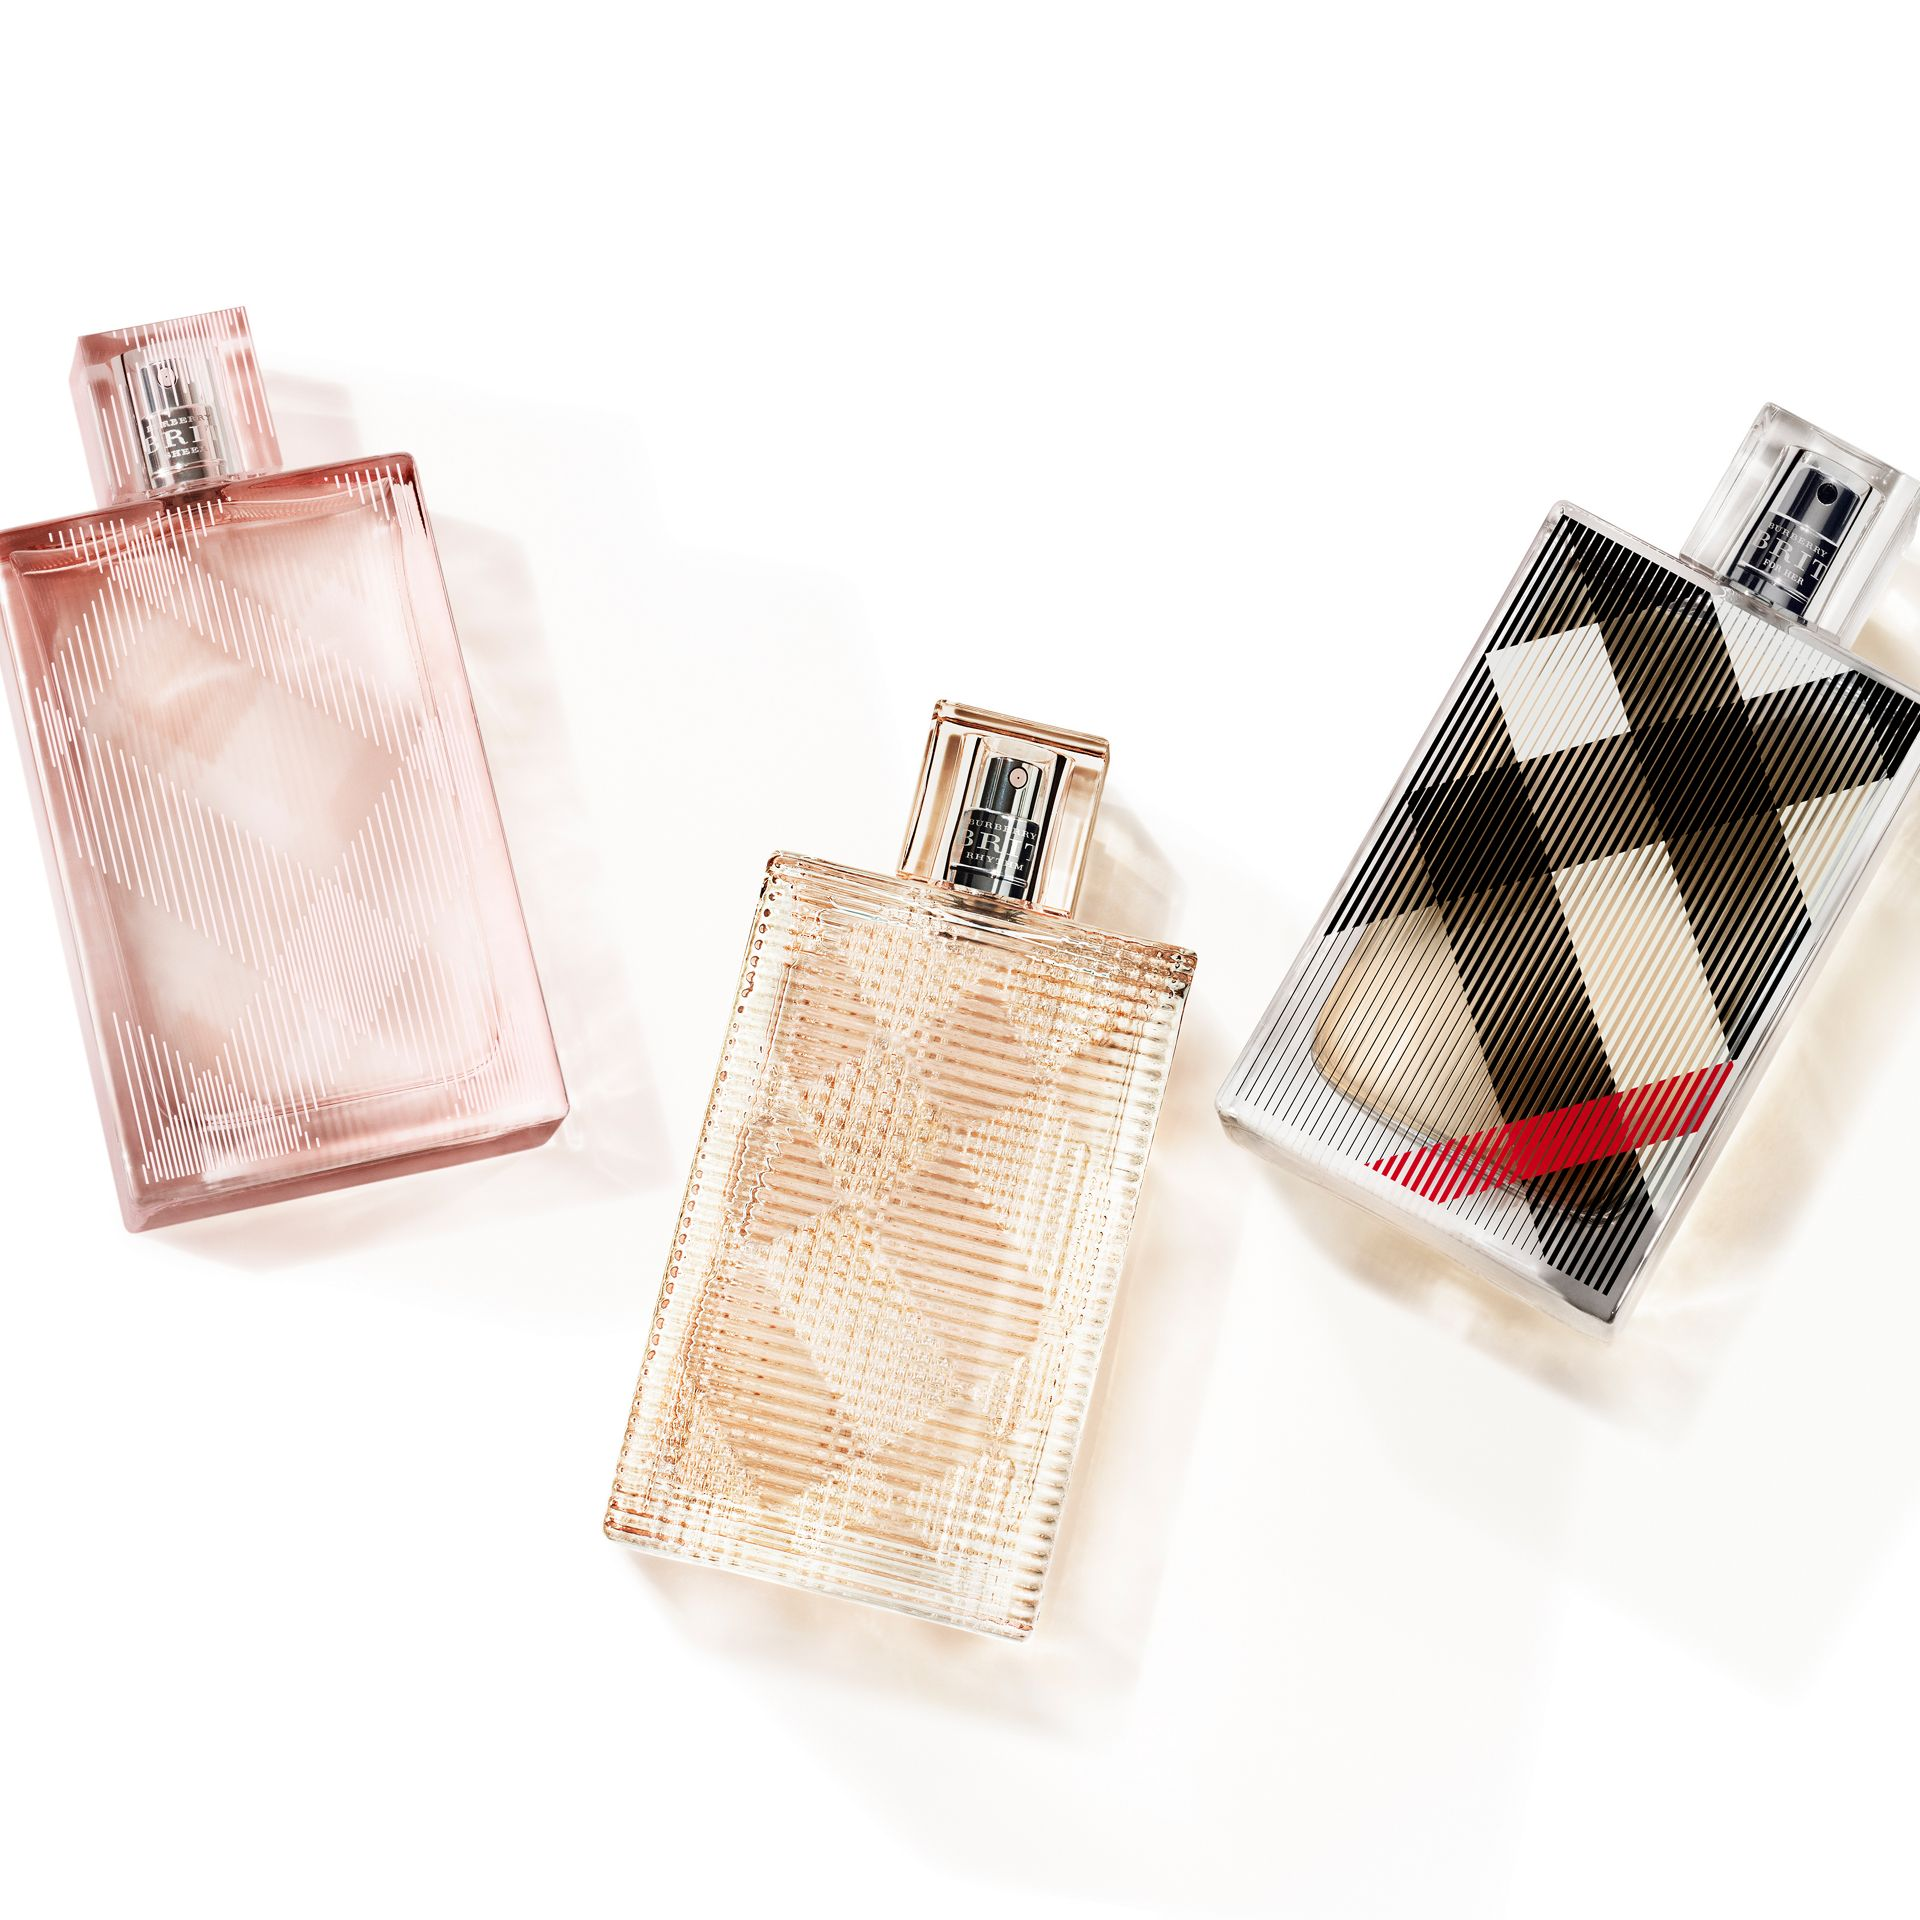 Burberry Brit Sheer 淡香水 30ml - 圖庫照片 3